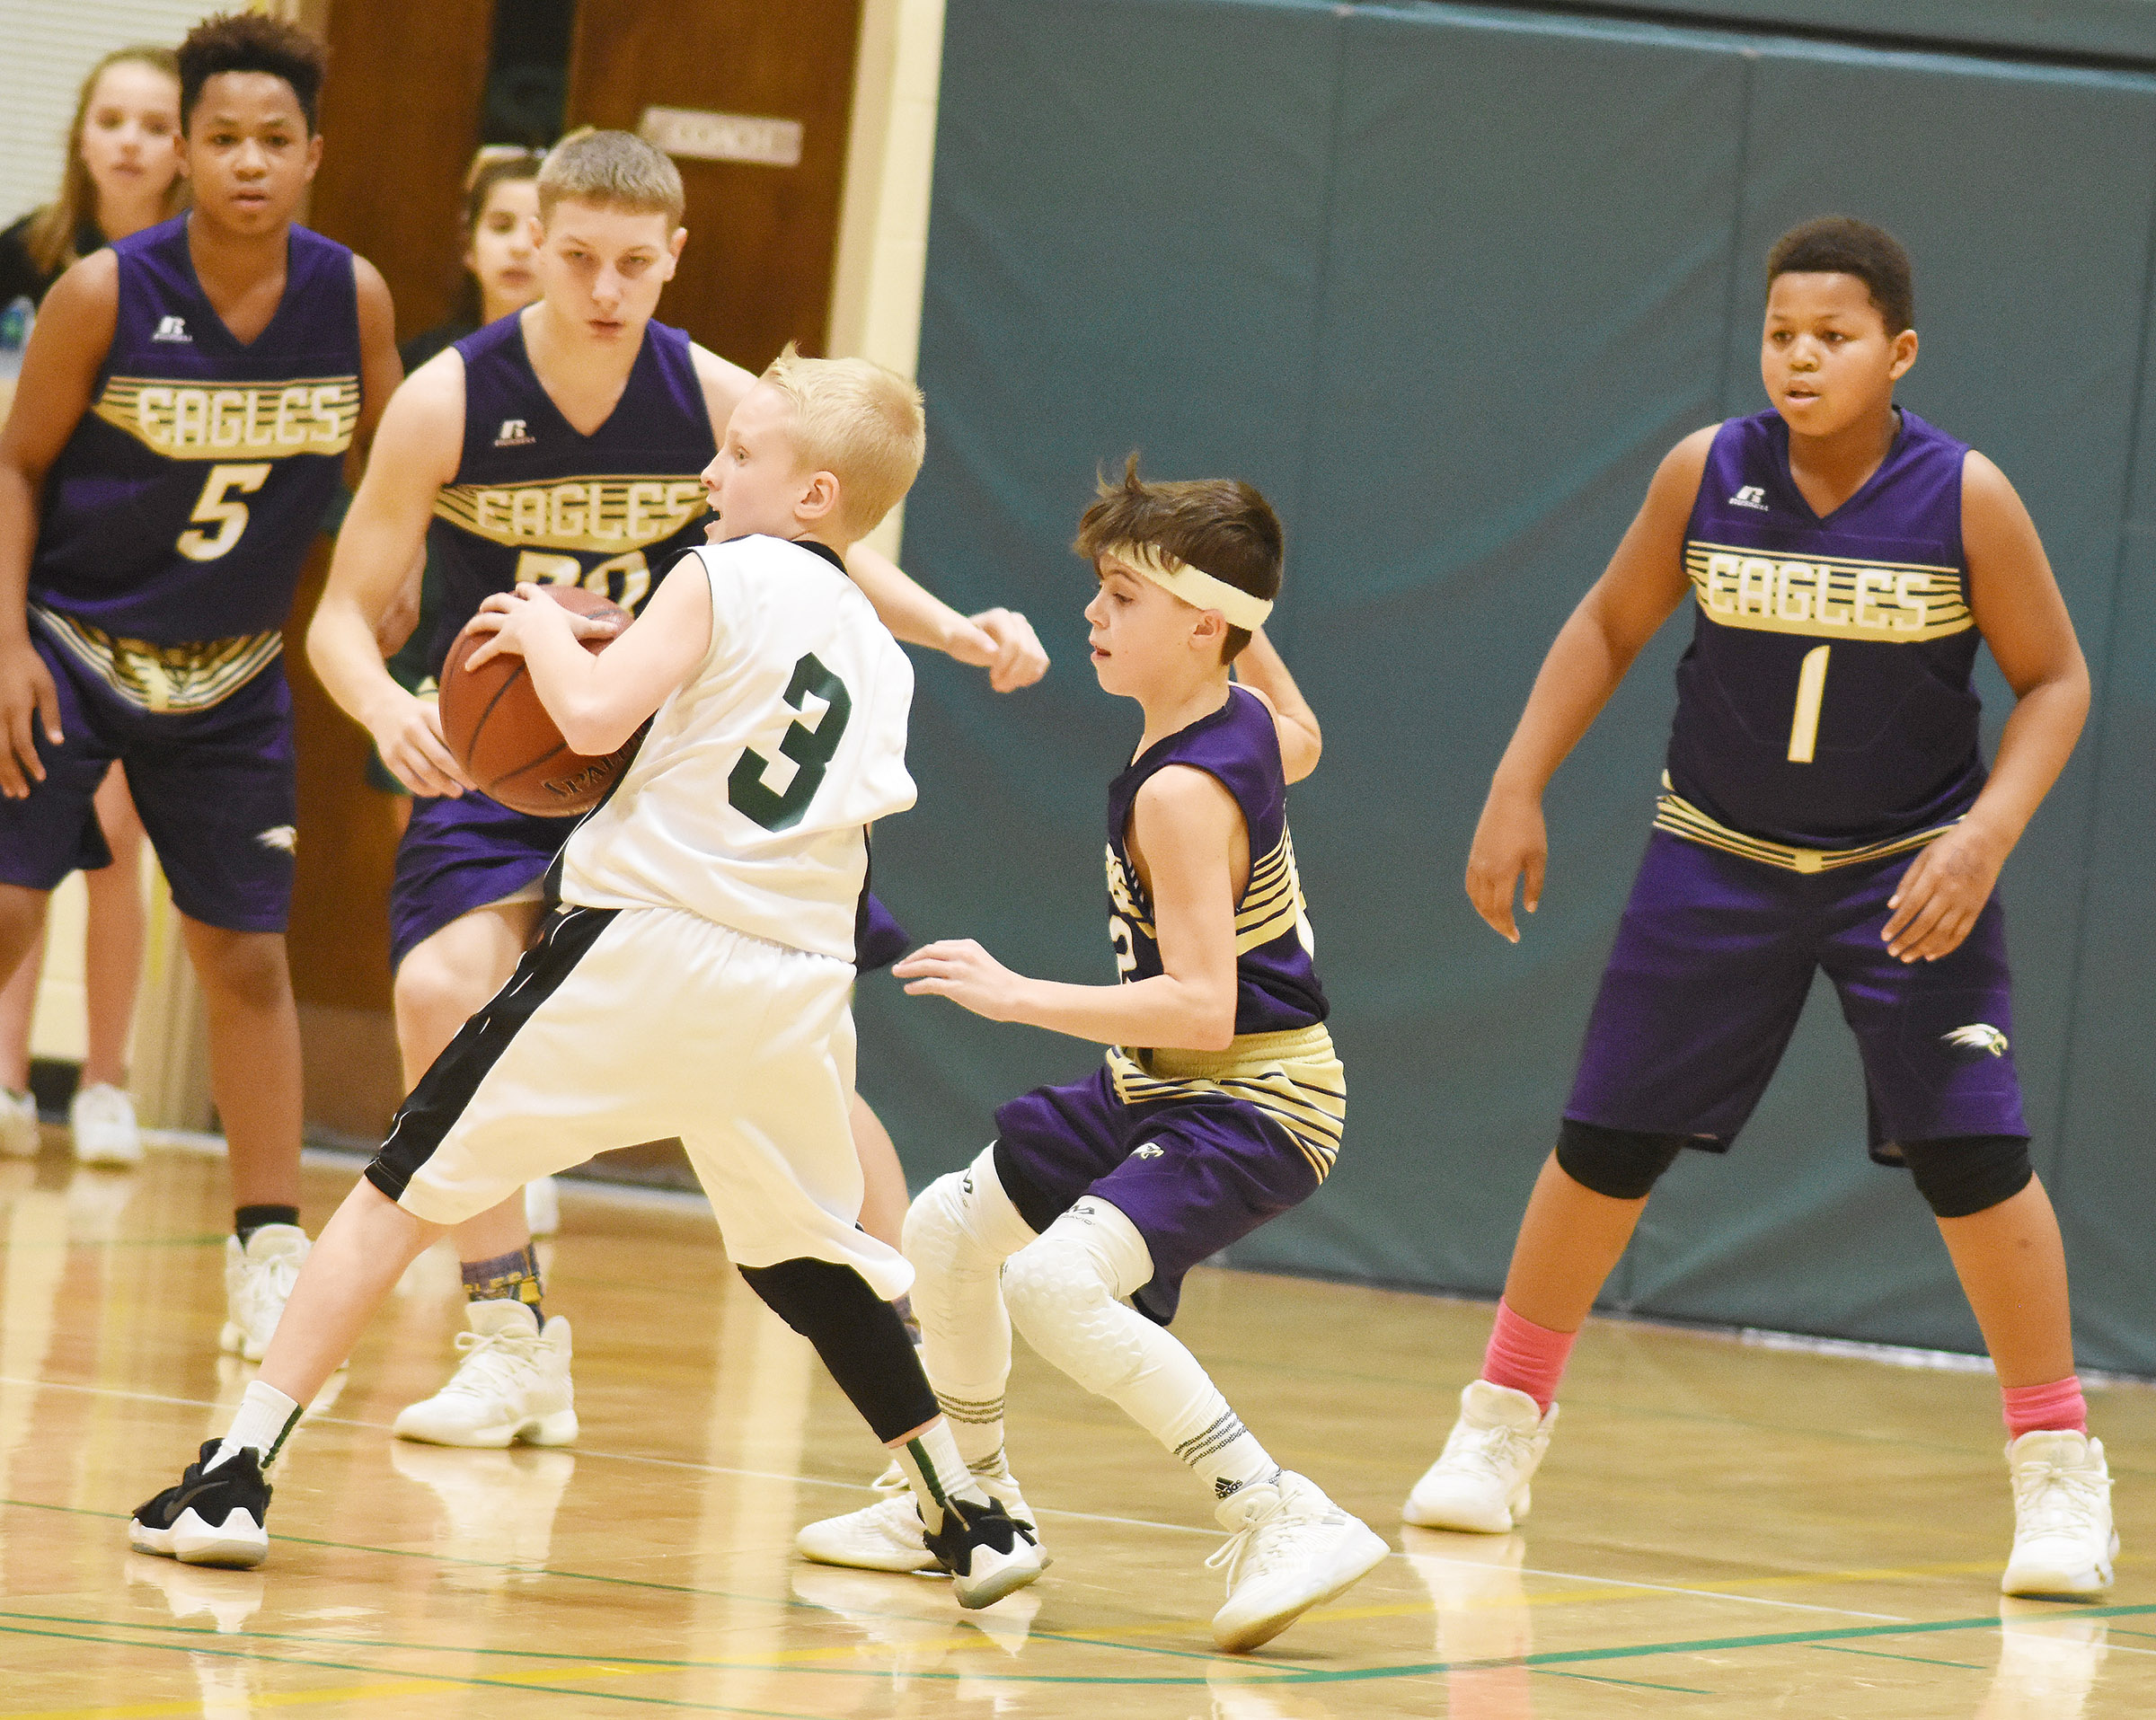 From left, CMS seventh-graders Deondre Weathers, Damon Johnson, Chase Hord and Keondre Weathers play defense.